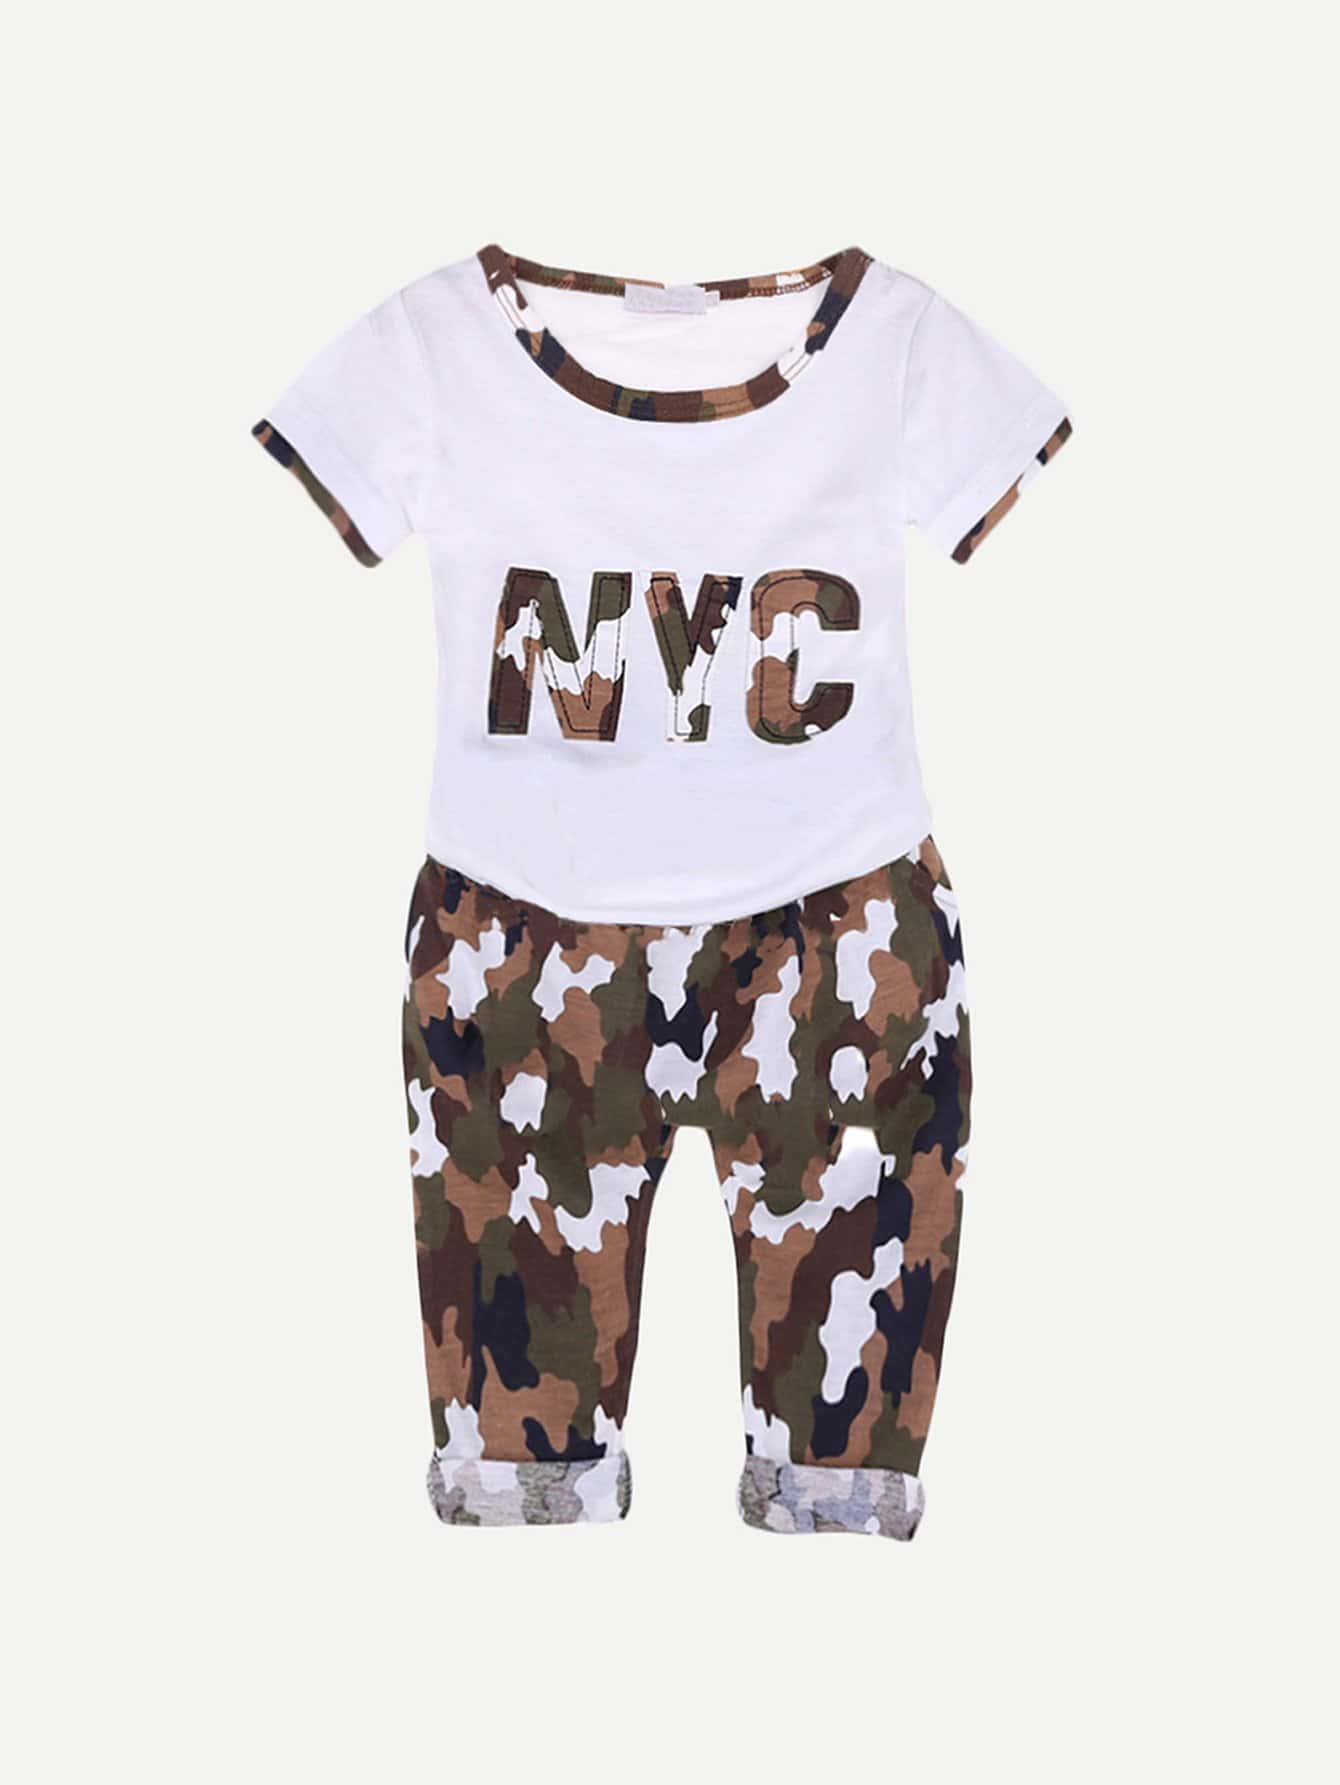 Boys Letter Print Tee With Camo Drawstring Pants kids letter print sleeveless tee with tropical print pants